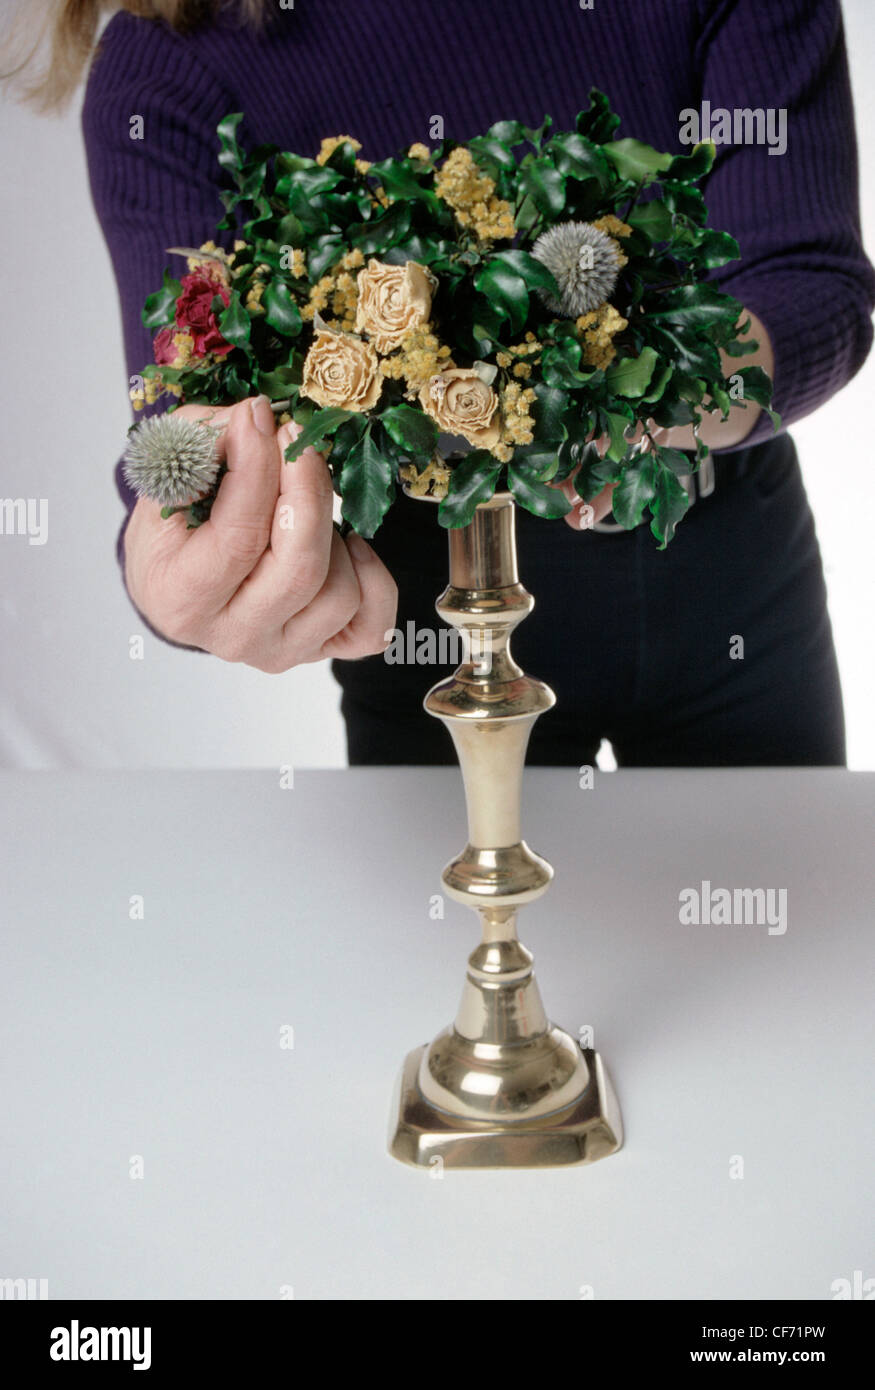 Candle Flower Ring This Beautiful Flower Arrangement And Candlestick